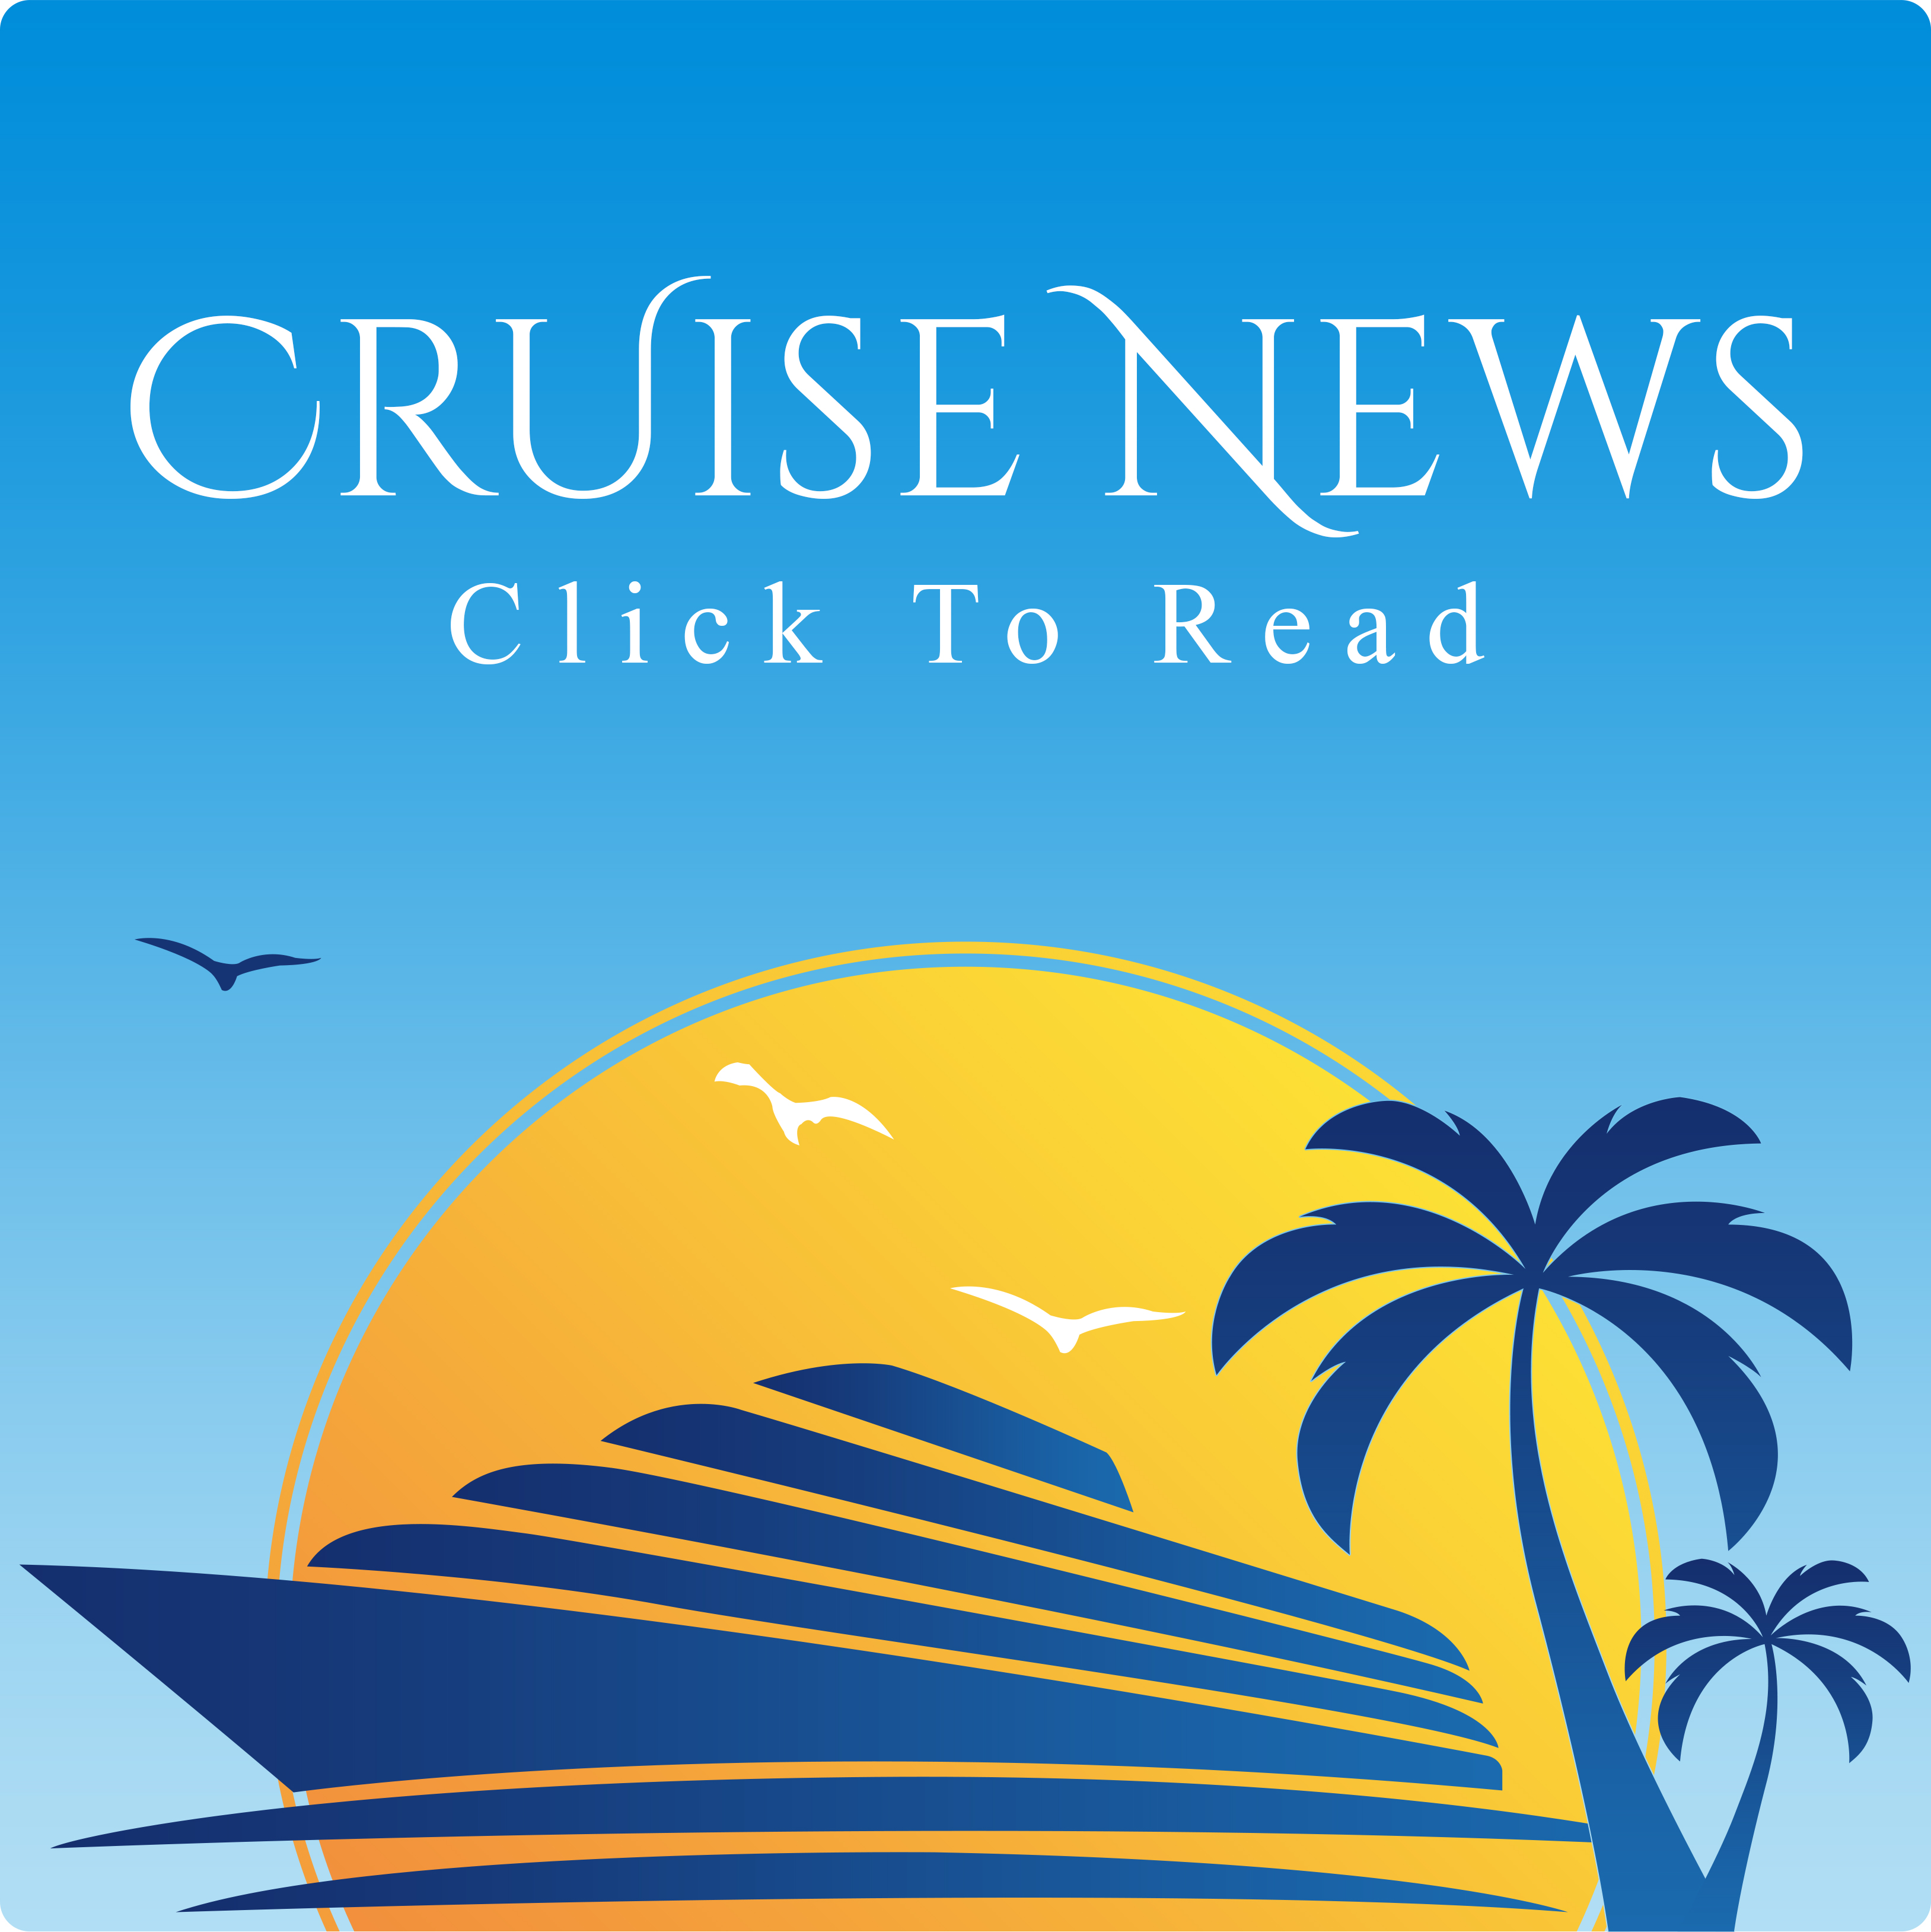 Cruise News Image of cruiseliner behind sun and palm tree